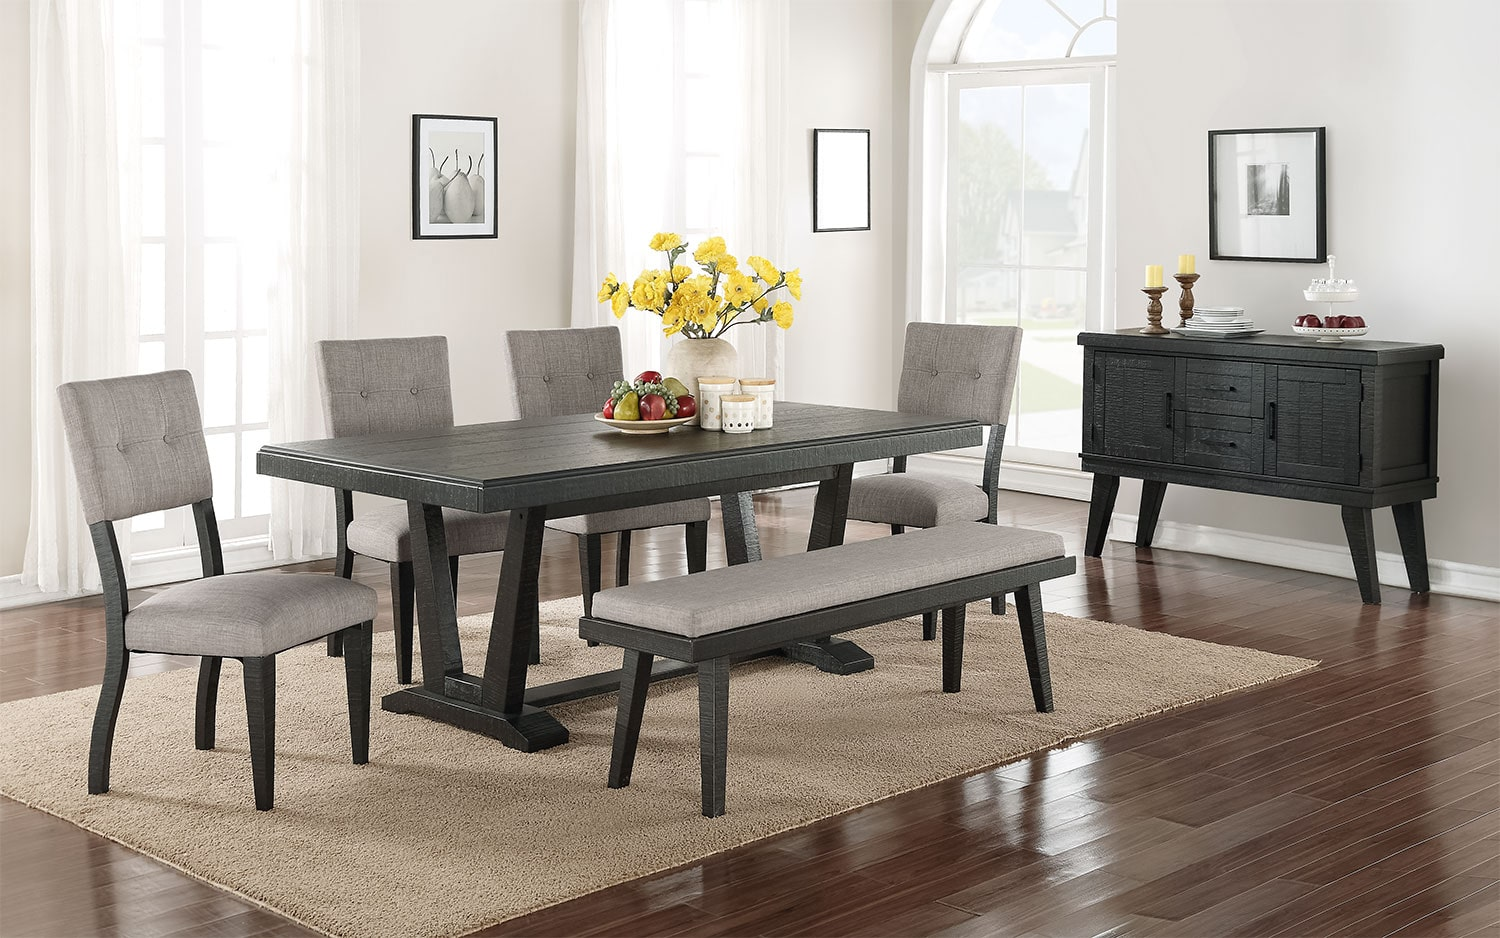 Imari 7 piece dining room set black and grey leon 39 s for Decor 7 piece lunch set